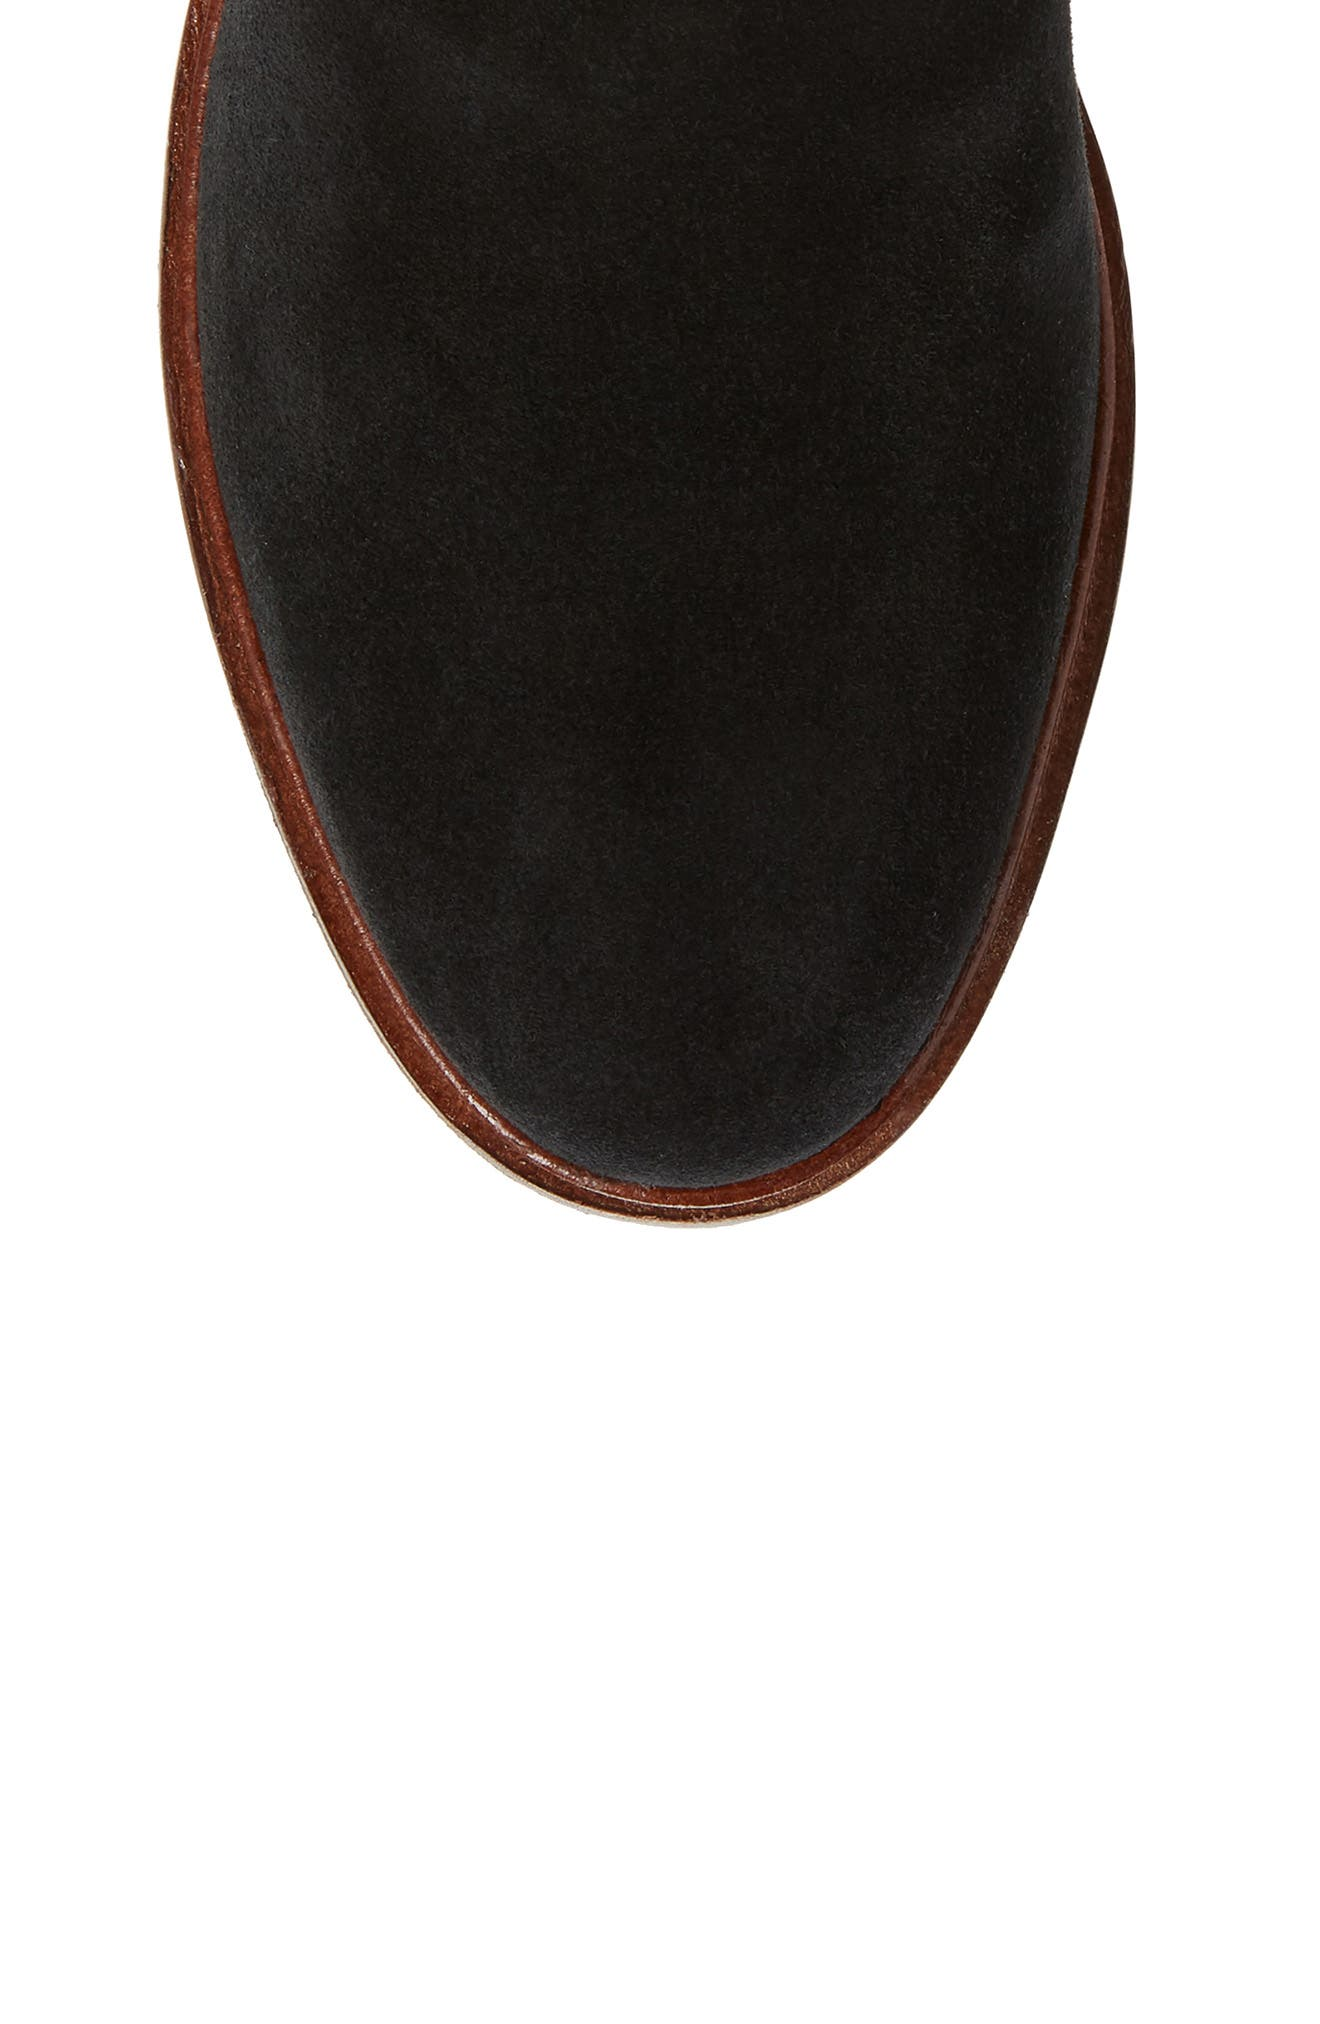 CLARKS<SUP>®</SUP>, Clarkdale Clad Boot, Alternate thumbnail 5, color, BLACK SUEDE